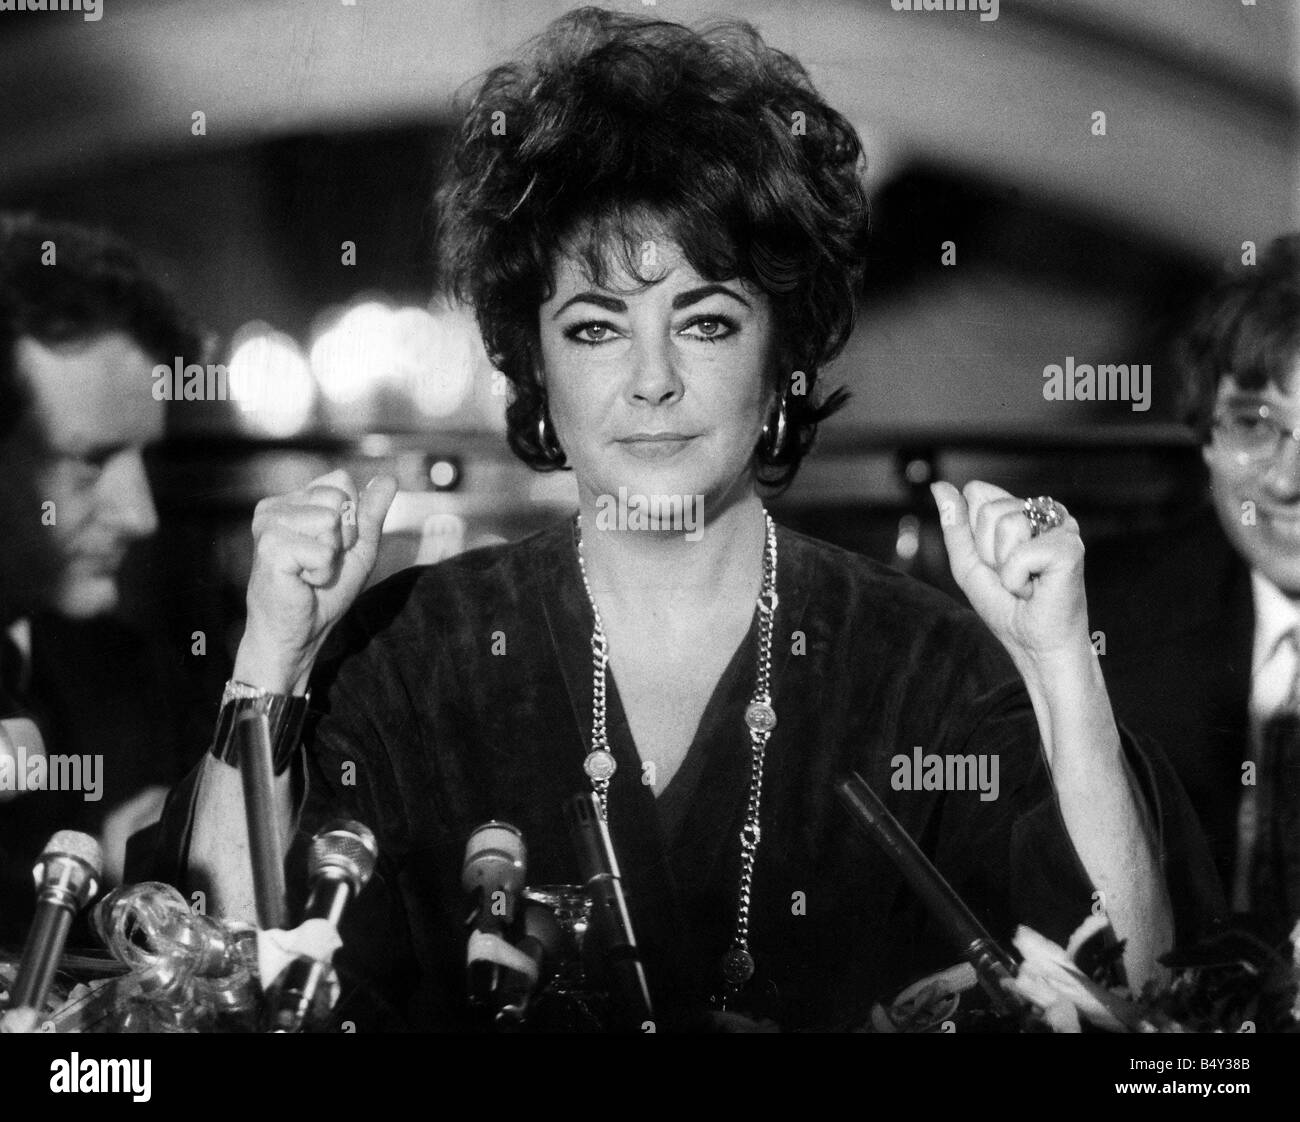 Liz Taylora Press conference 1982 - Stock Image